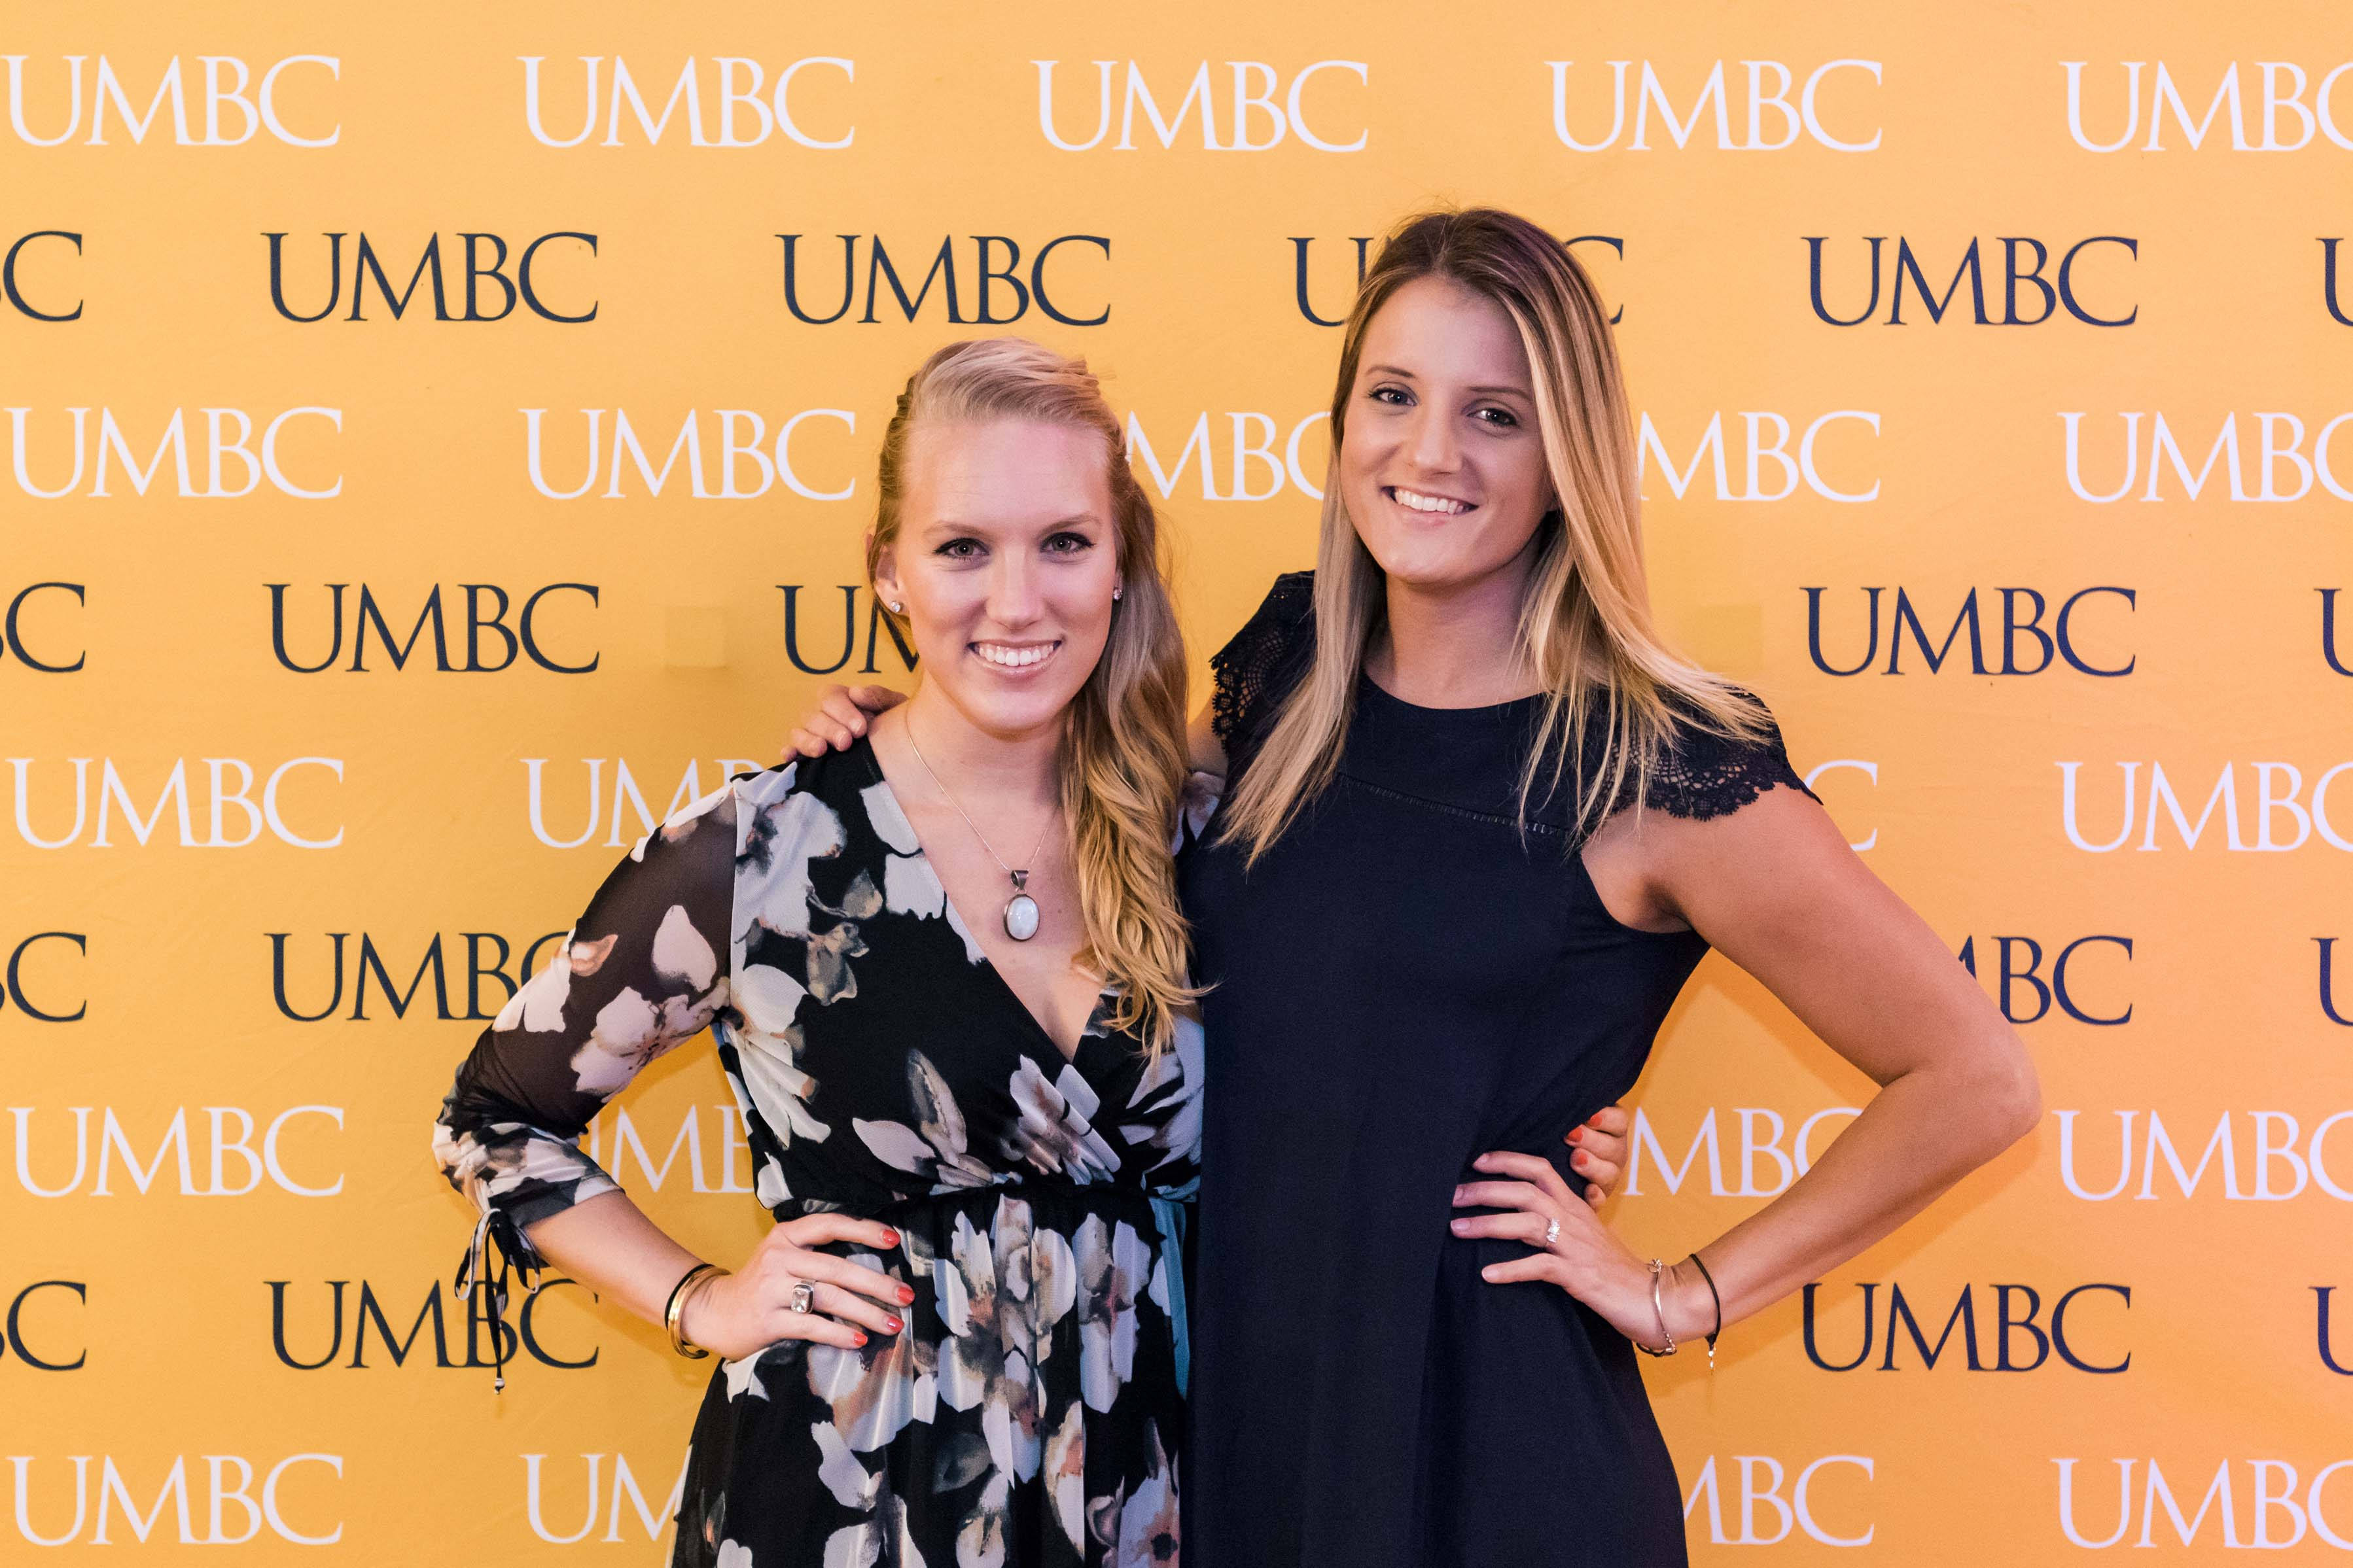 Two women pose together hands on hip at UMBC wall at wine tasting event